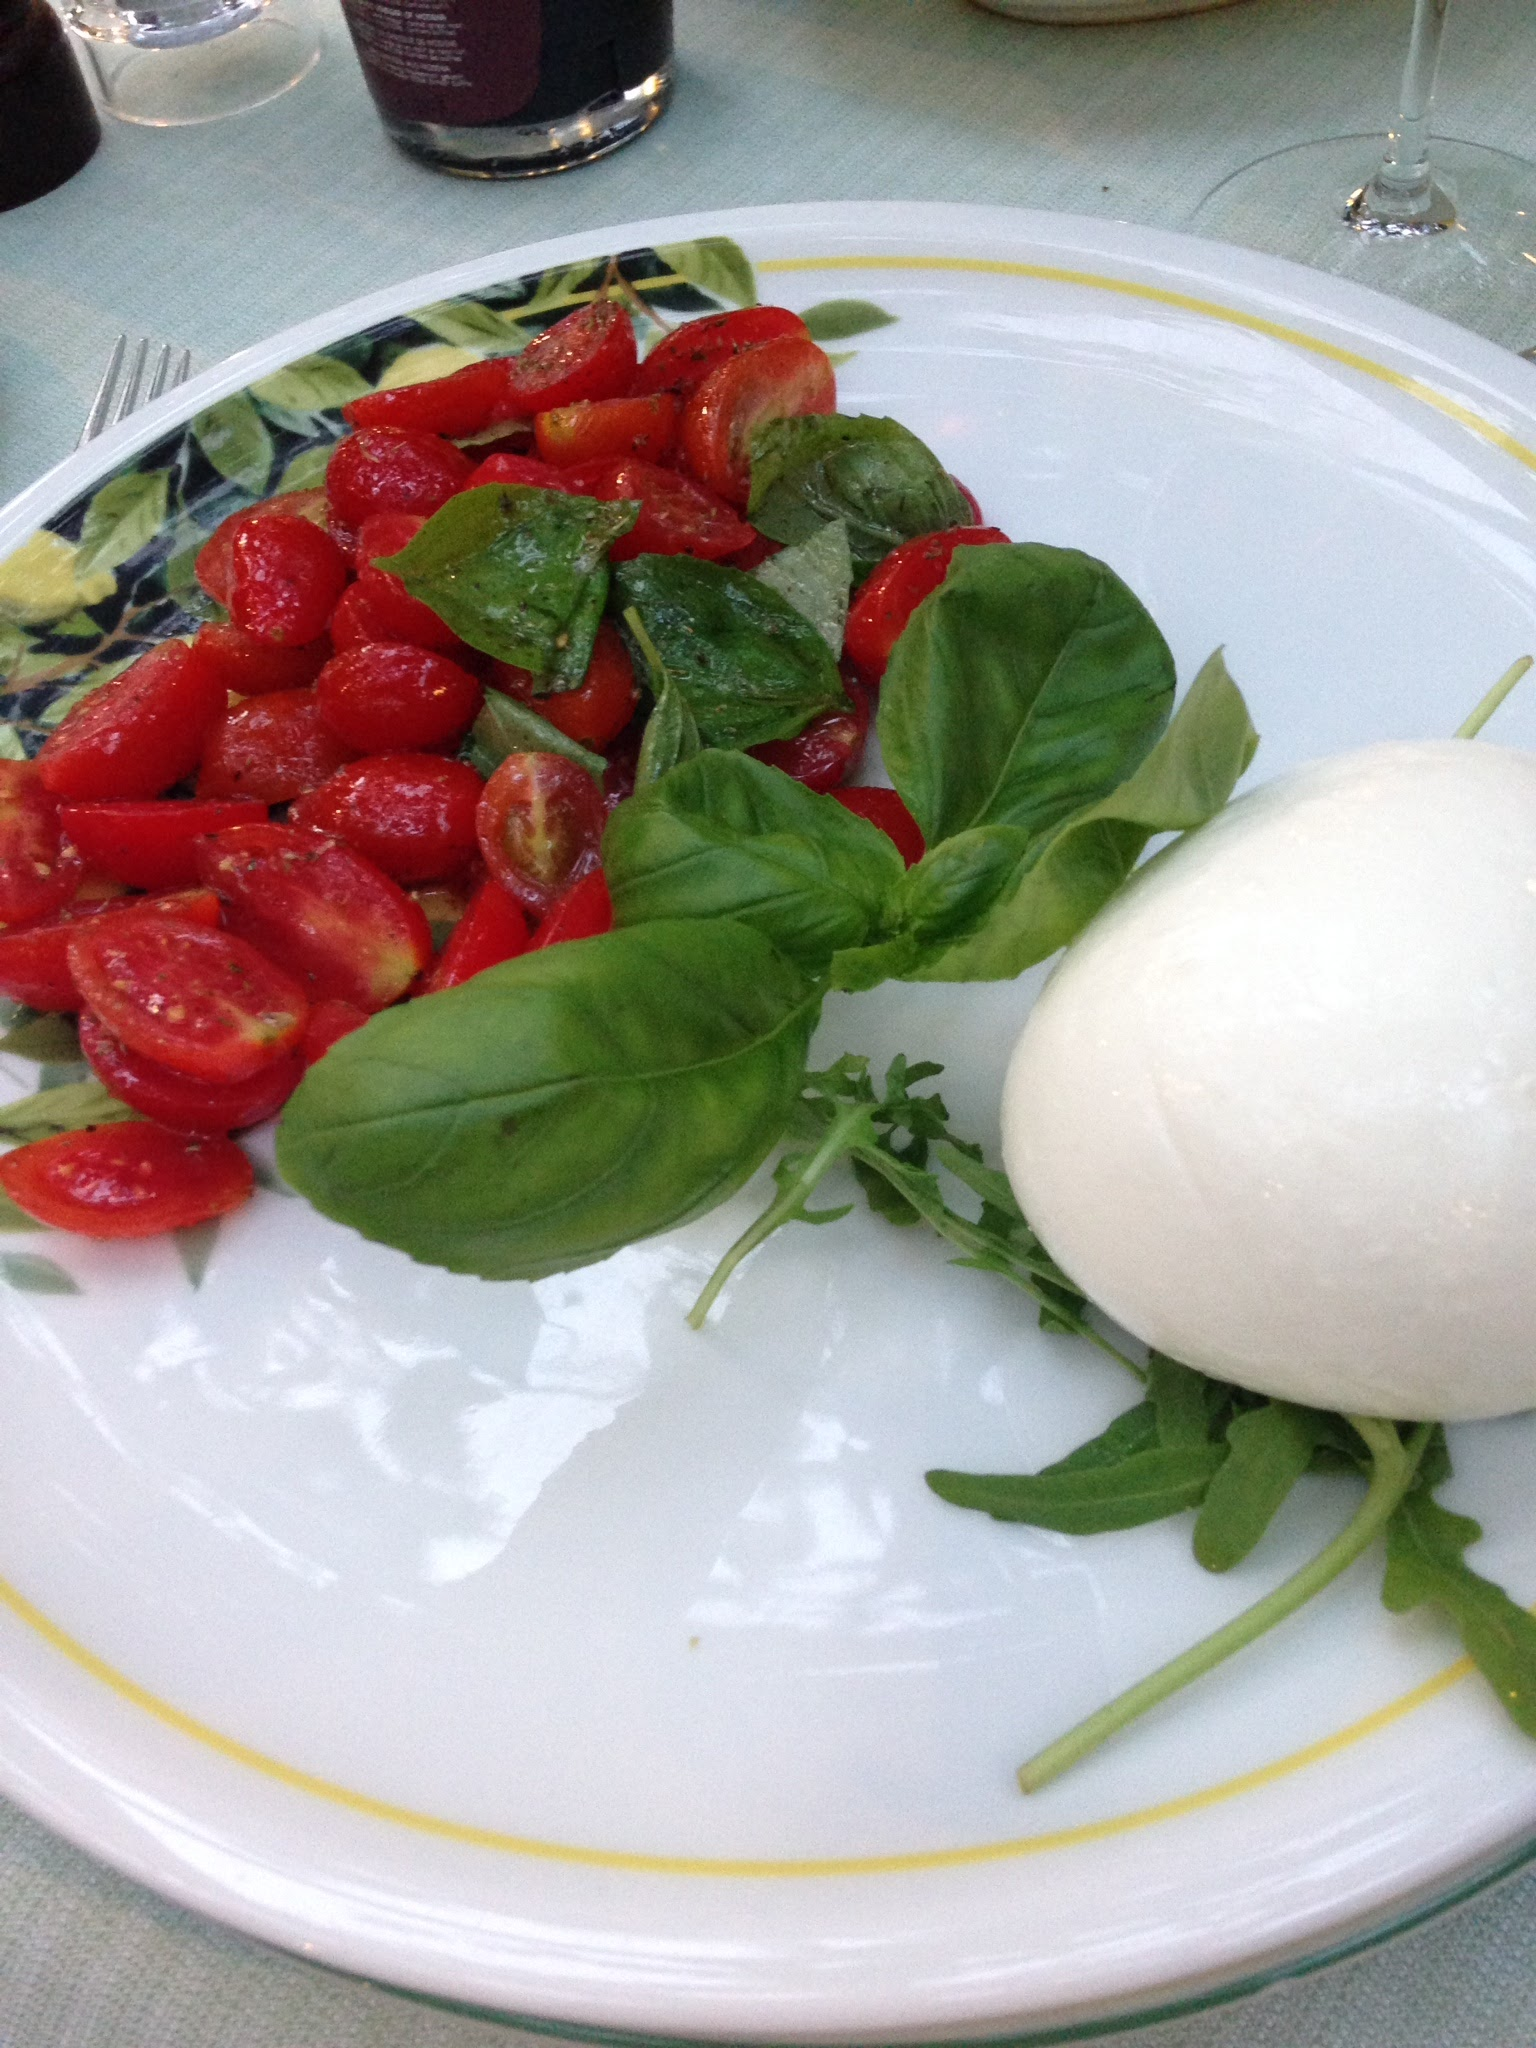 Having a caprese salad in Capri is a must!